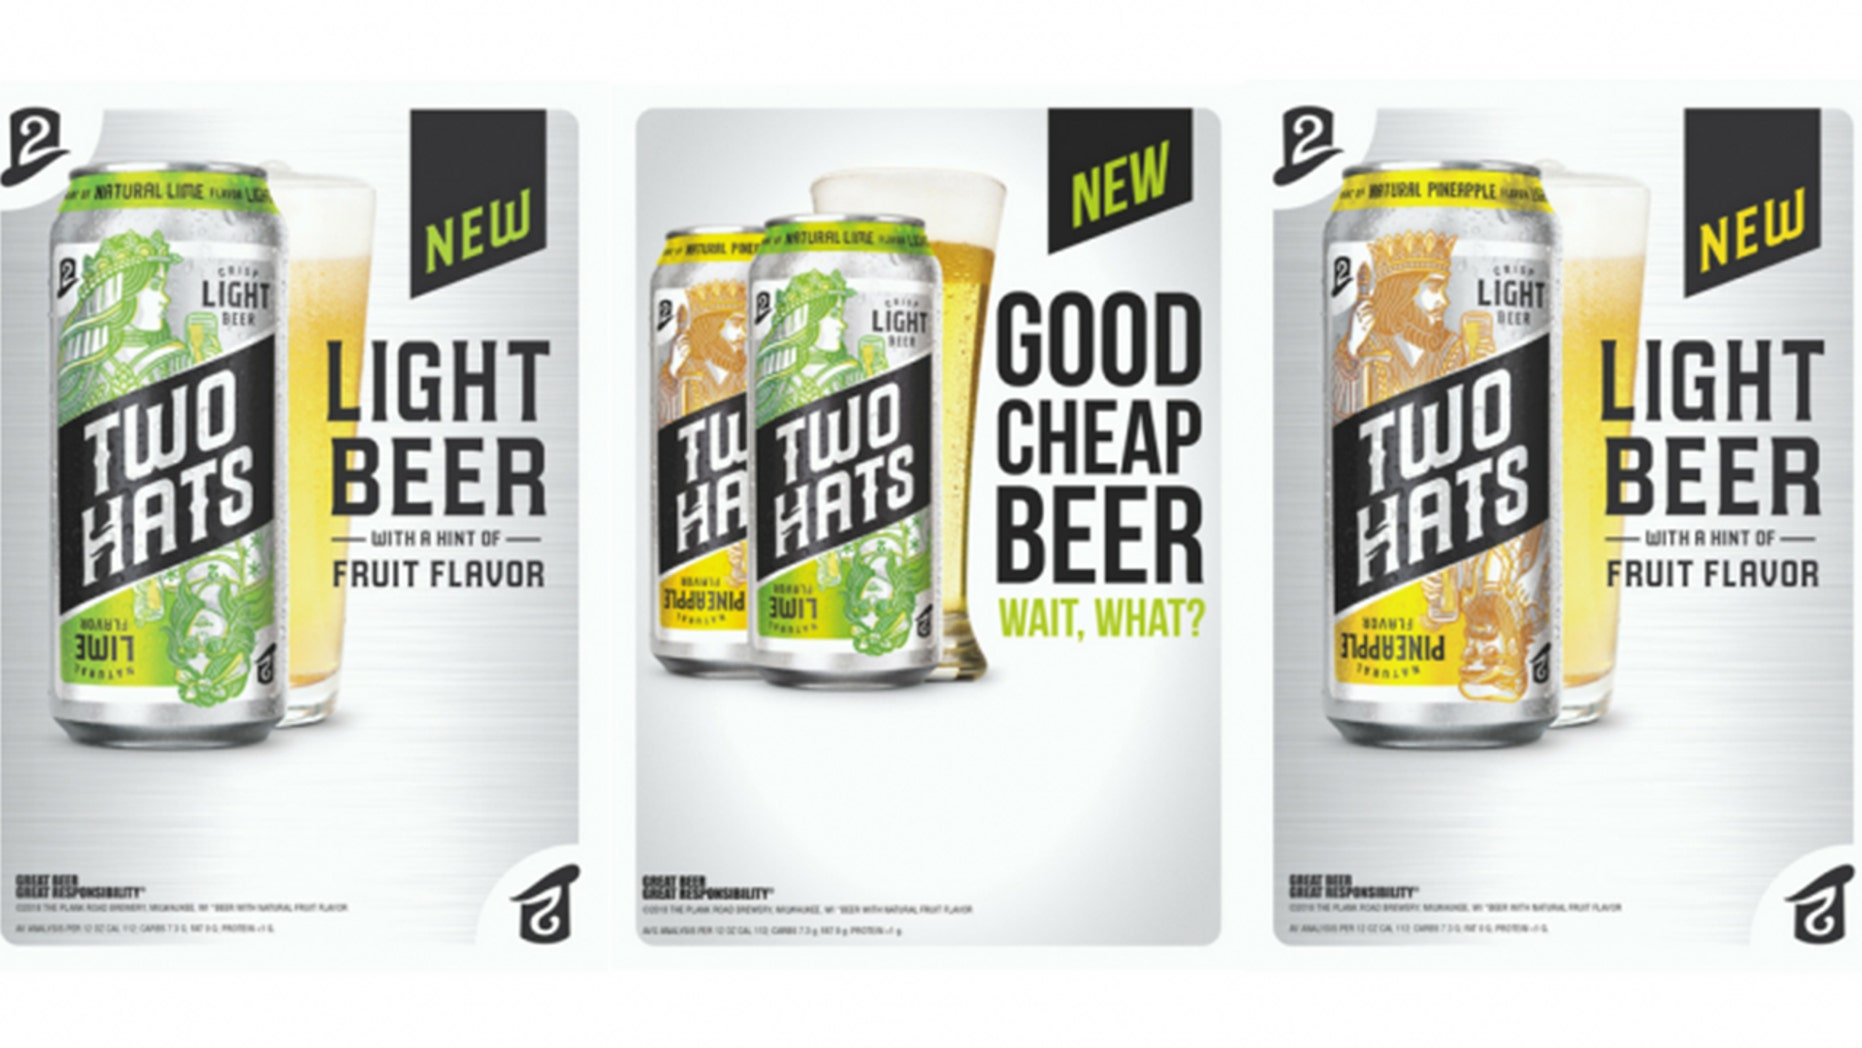 MillerCoors is launching a millennial-targeted cheap beer, aimed at getting more young people to choose it over wine or spirits.